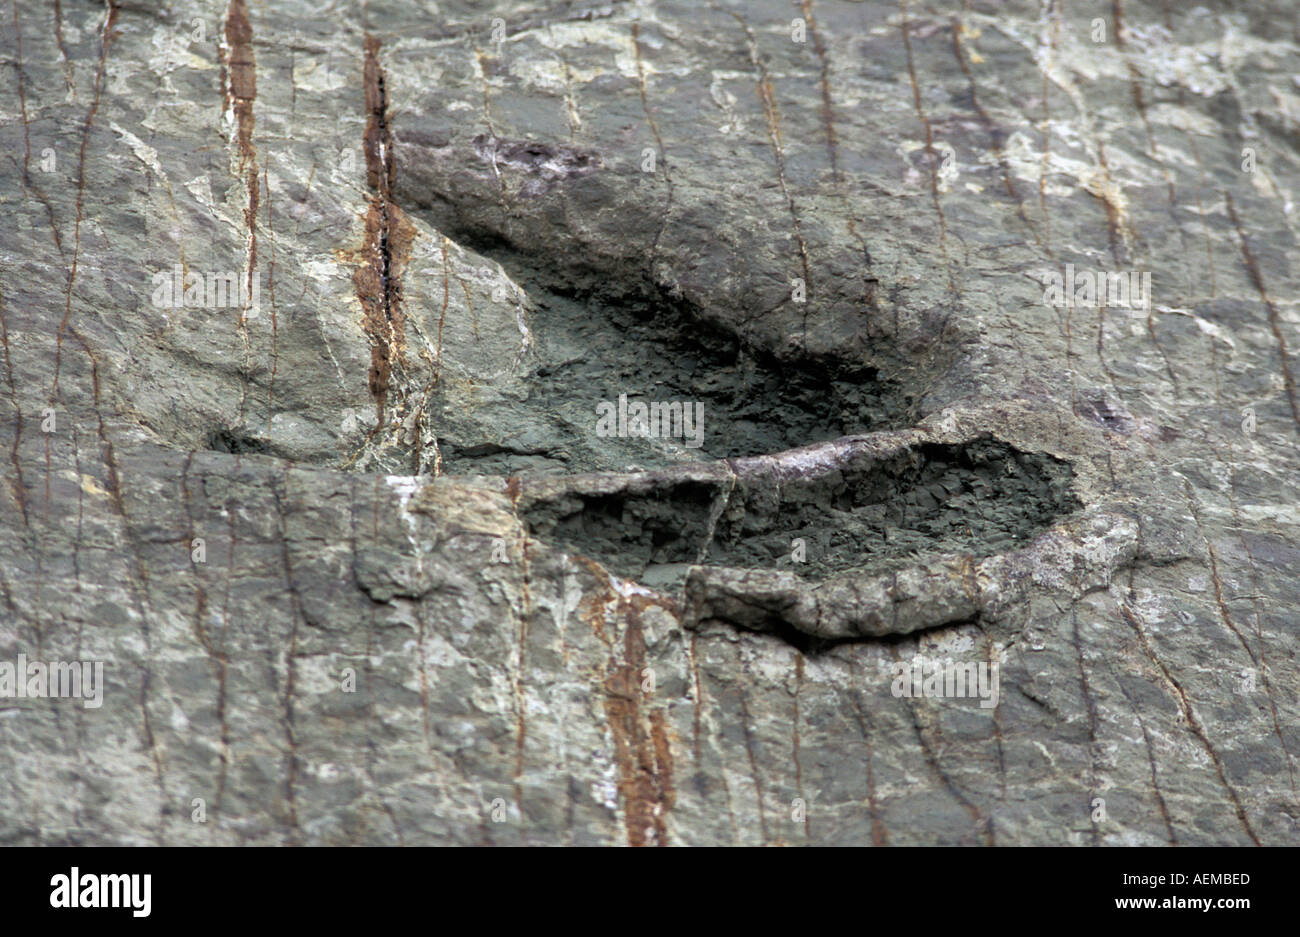 Cal Orko mountain dinosaur footprints A popular trip from Sucre 65 to 85 million year old prints Close up of print Bolivia - Stock Image